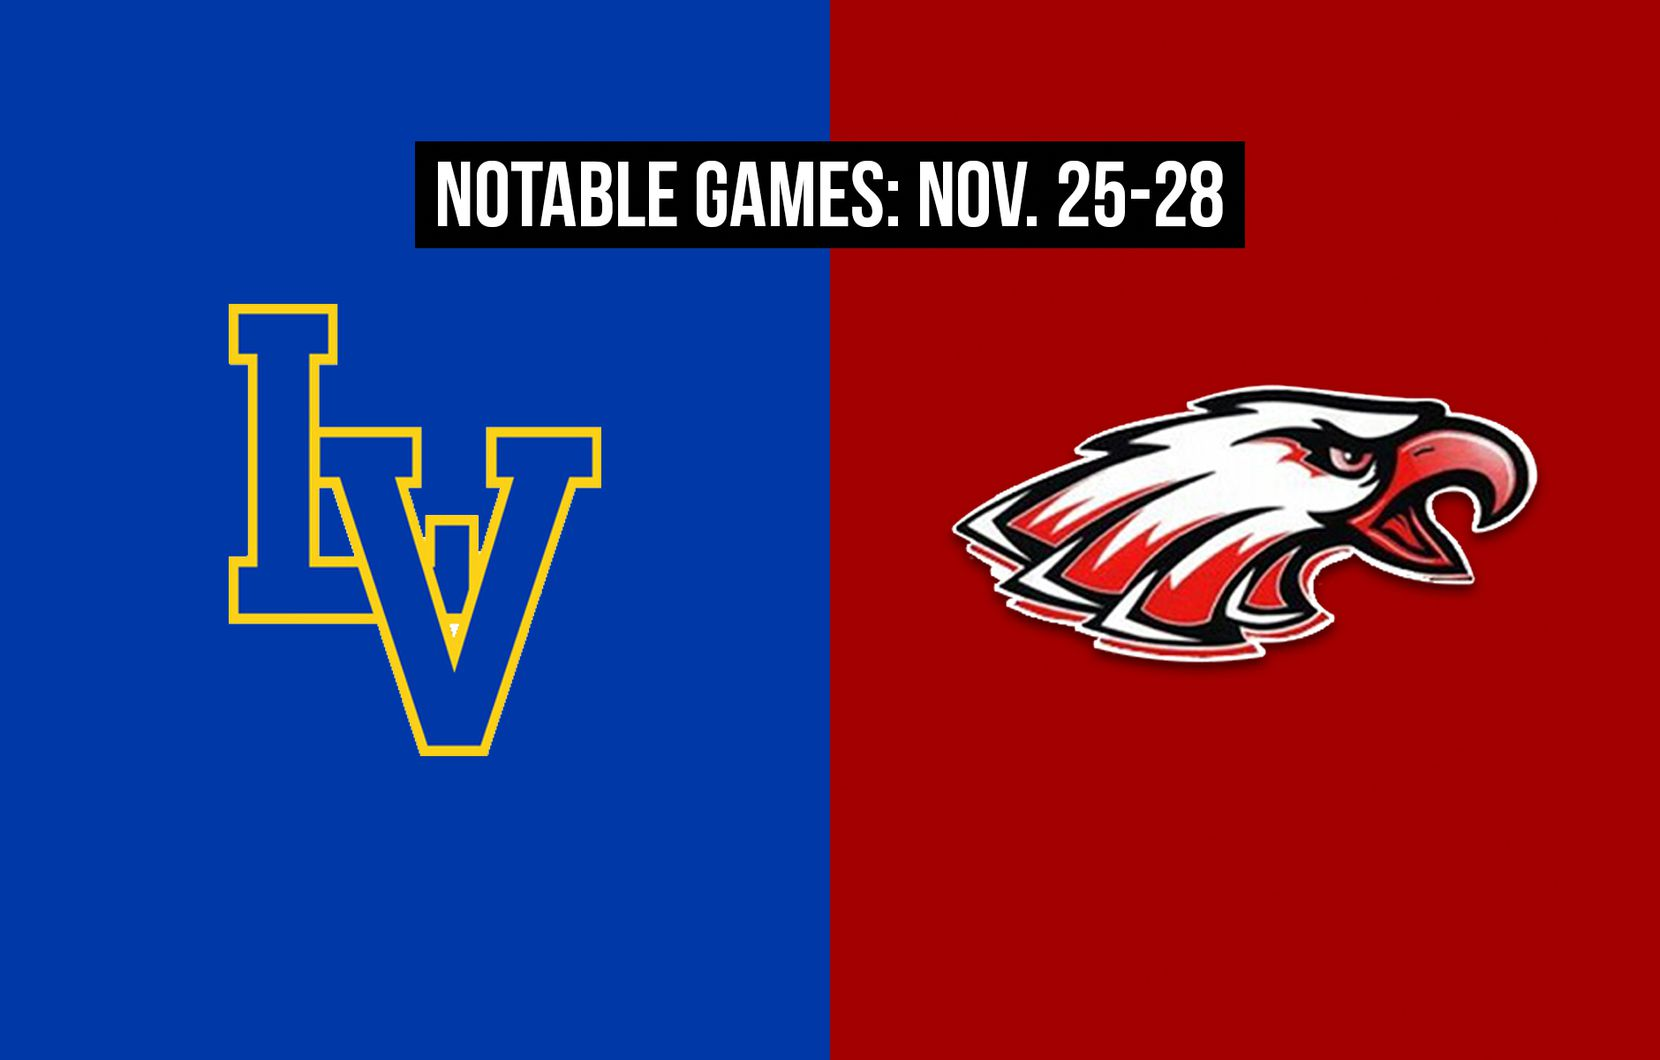 Notable games for the week of Nov. 25-28 of the 2020 season: Waco La Vega vs. Argyle.